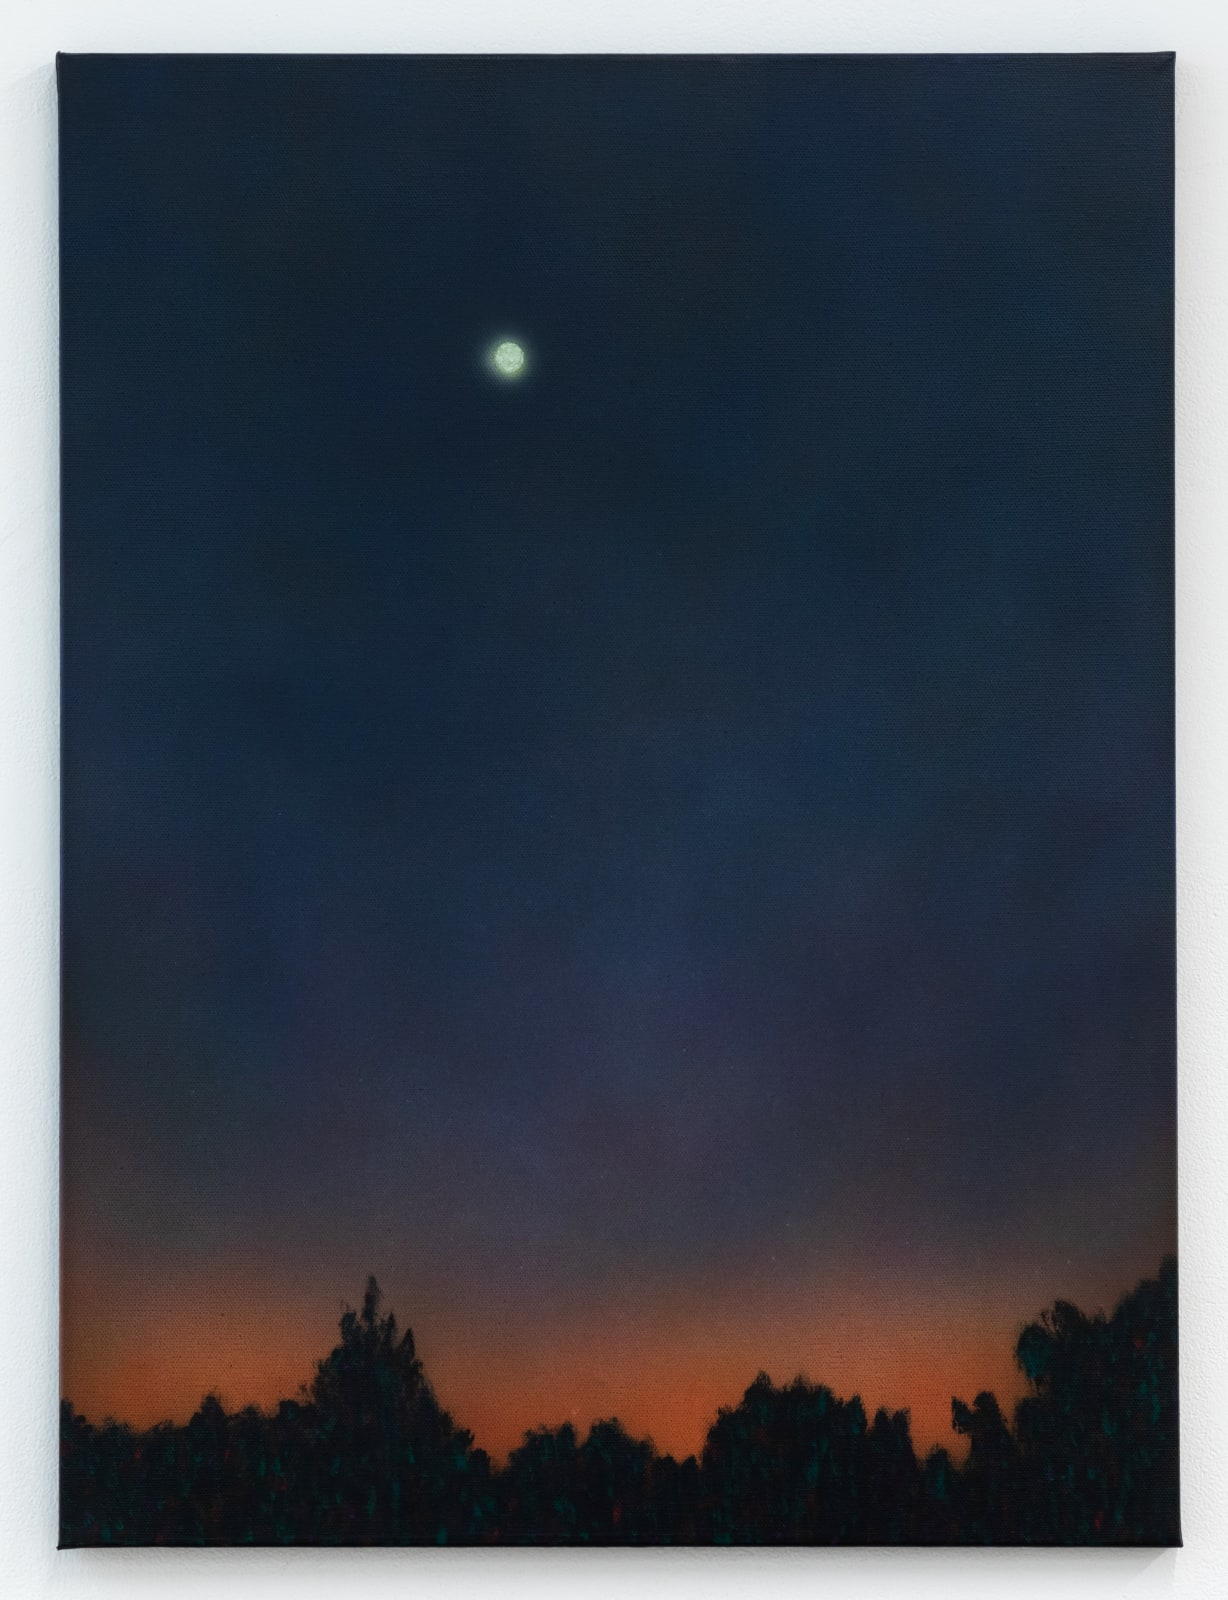 Sung Hwa Kim, Nocturne: The night returned to its sleep and silence, 2021